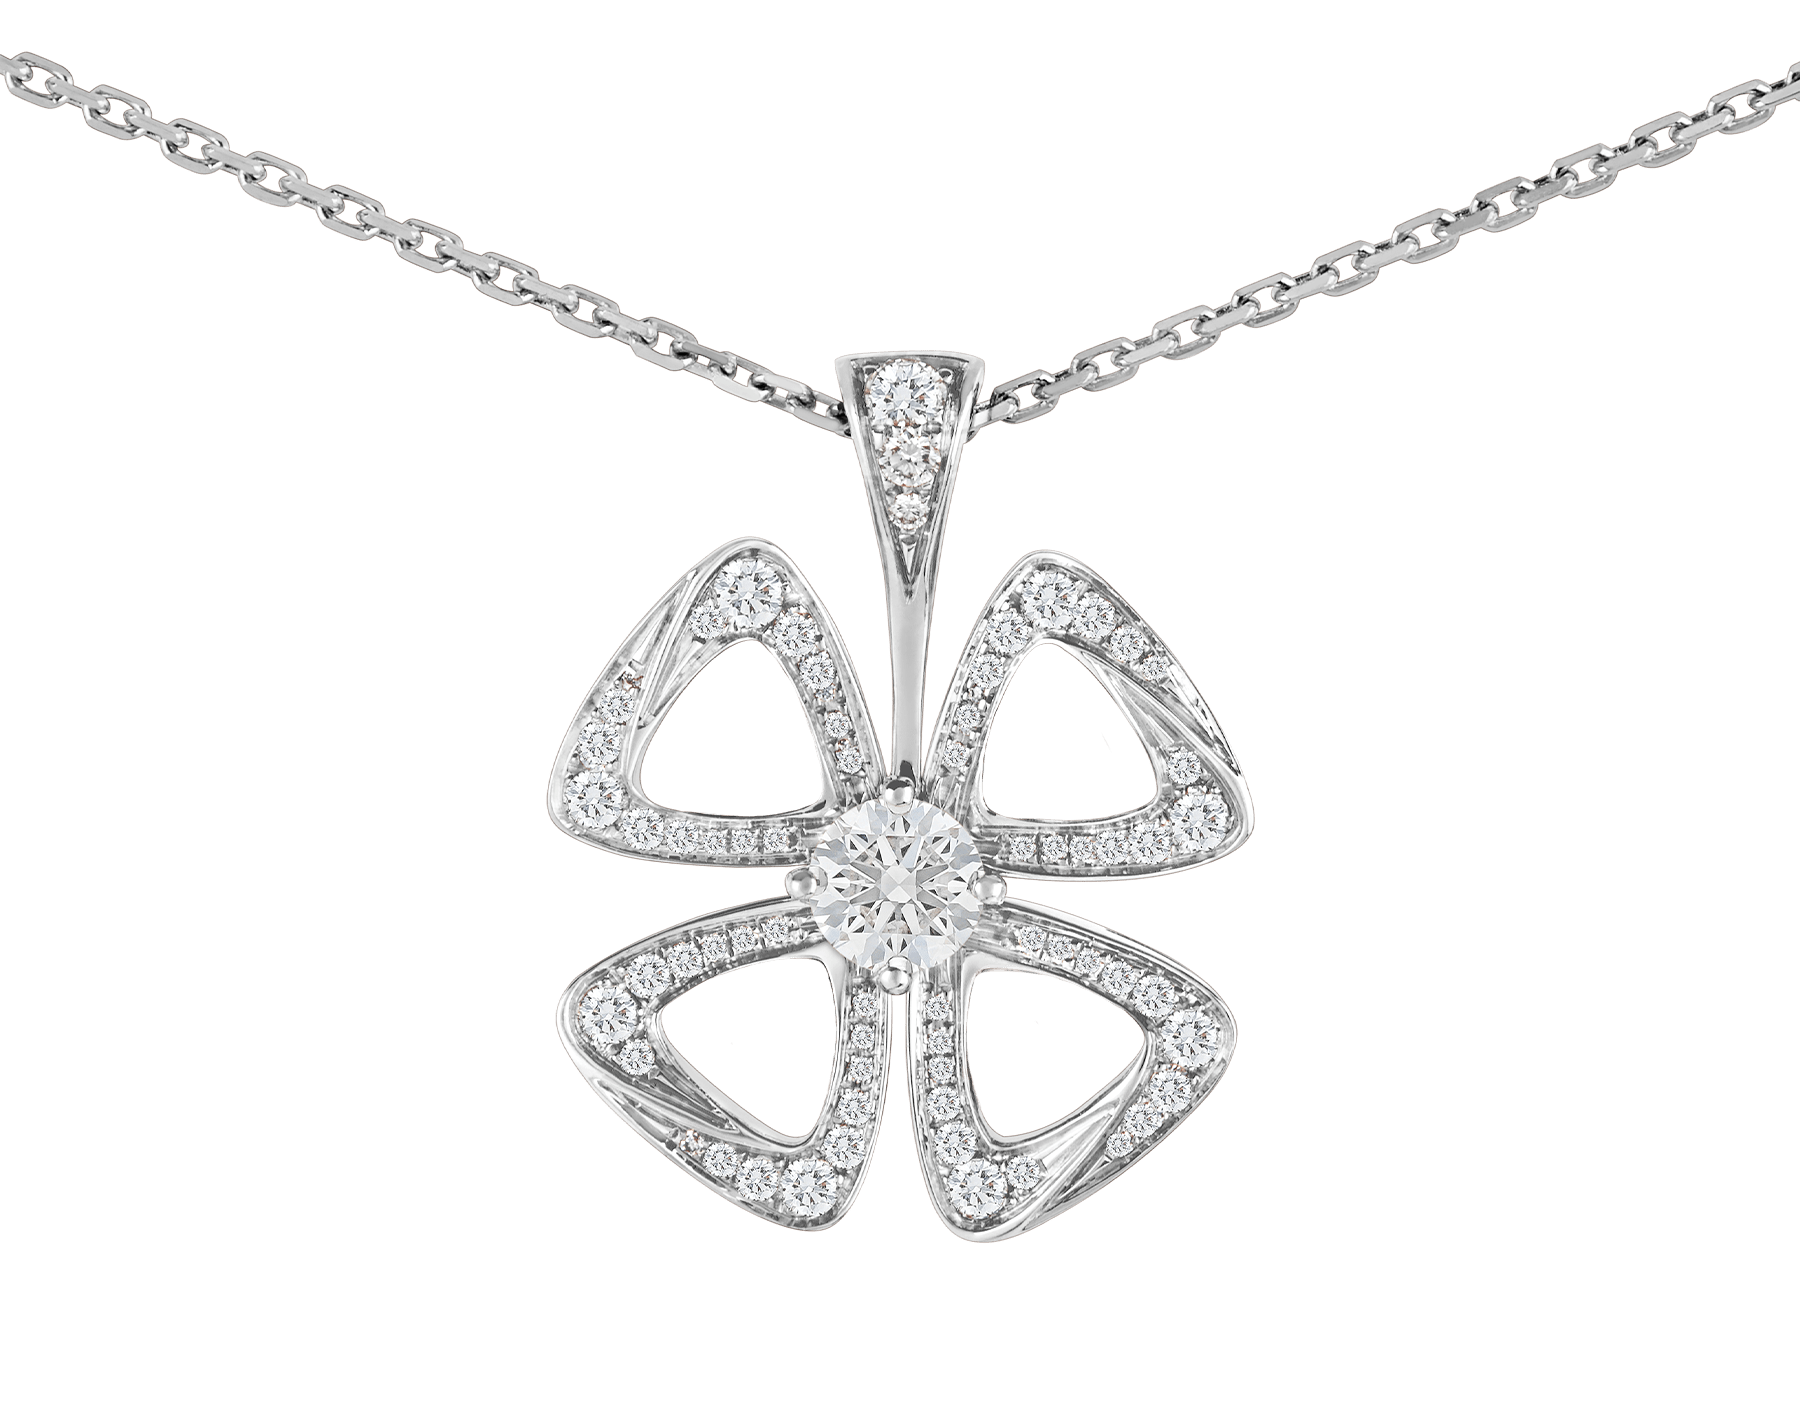 Fiorever 18 kt white gold necklace set with a central diamond and pavé diamonds. 354469 image 3